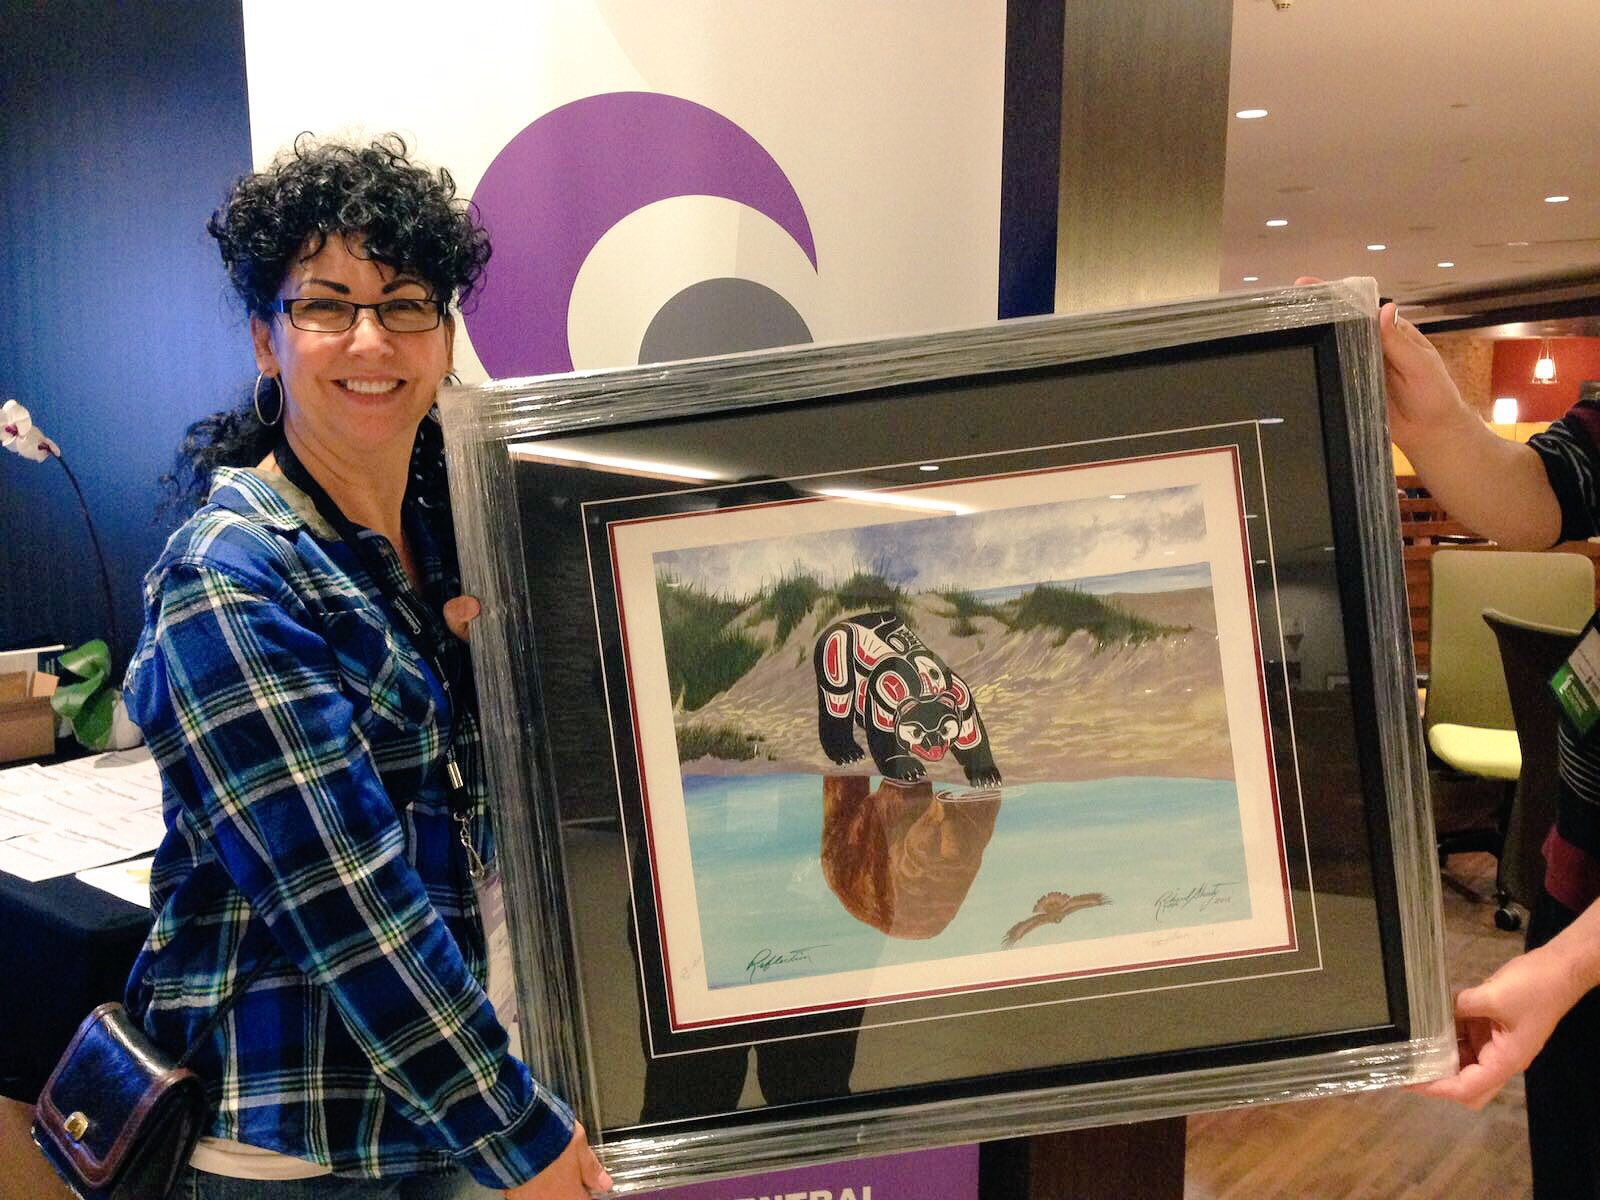 Congratulations to Dora from Aqanttanam Housing Society on winning this beautiful art piece from Urban Fair Trade Gallery! #HousingCentral https://t.co/7umR4lAzXX